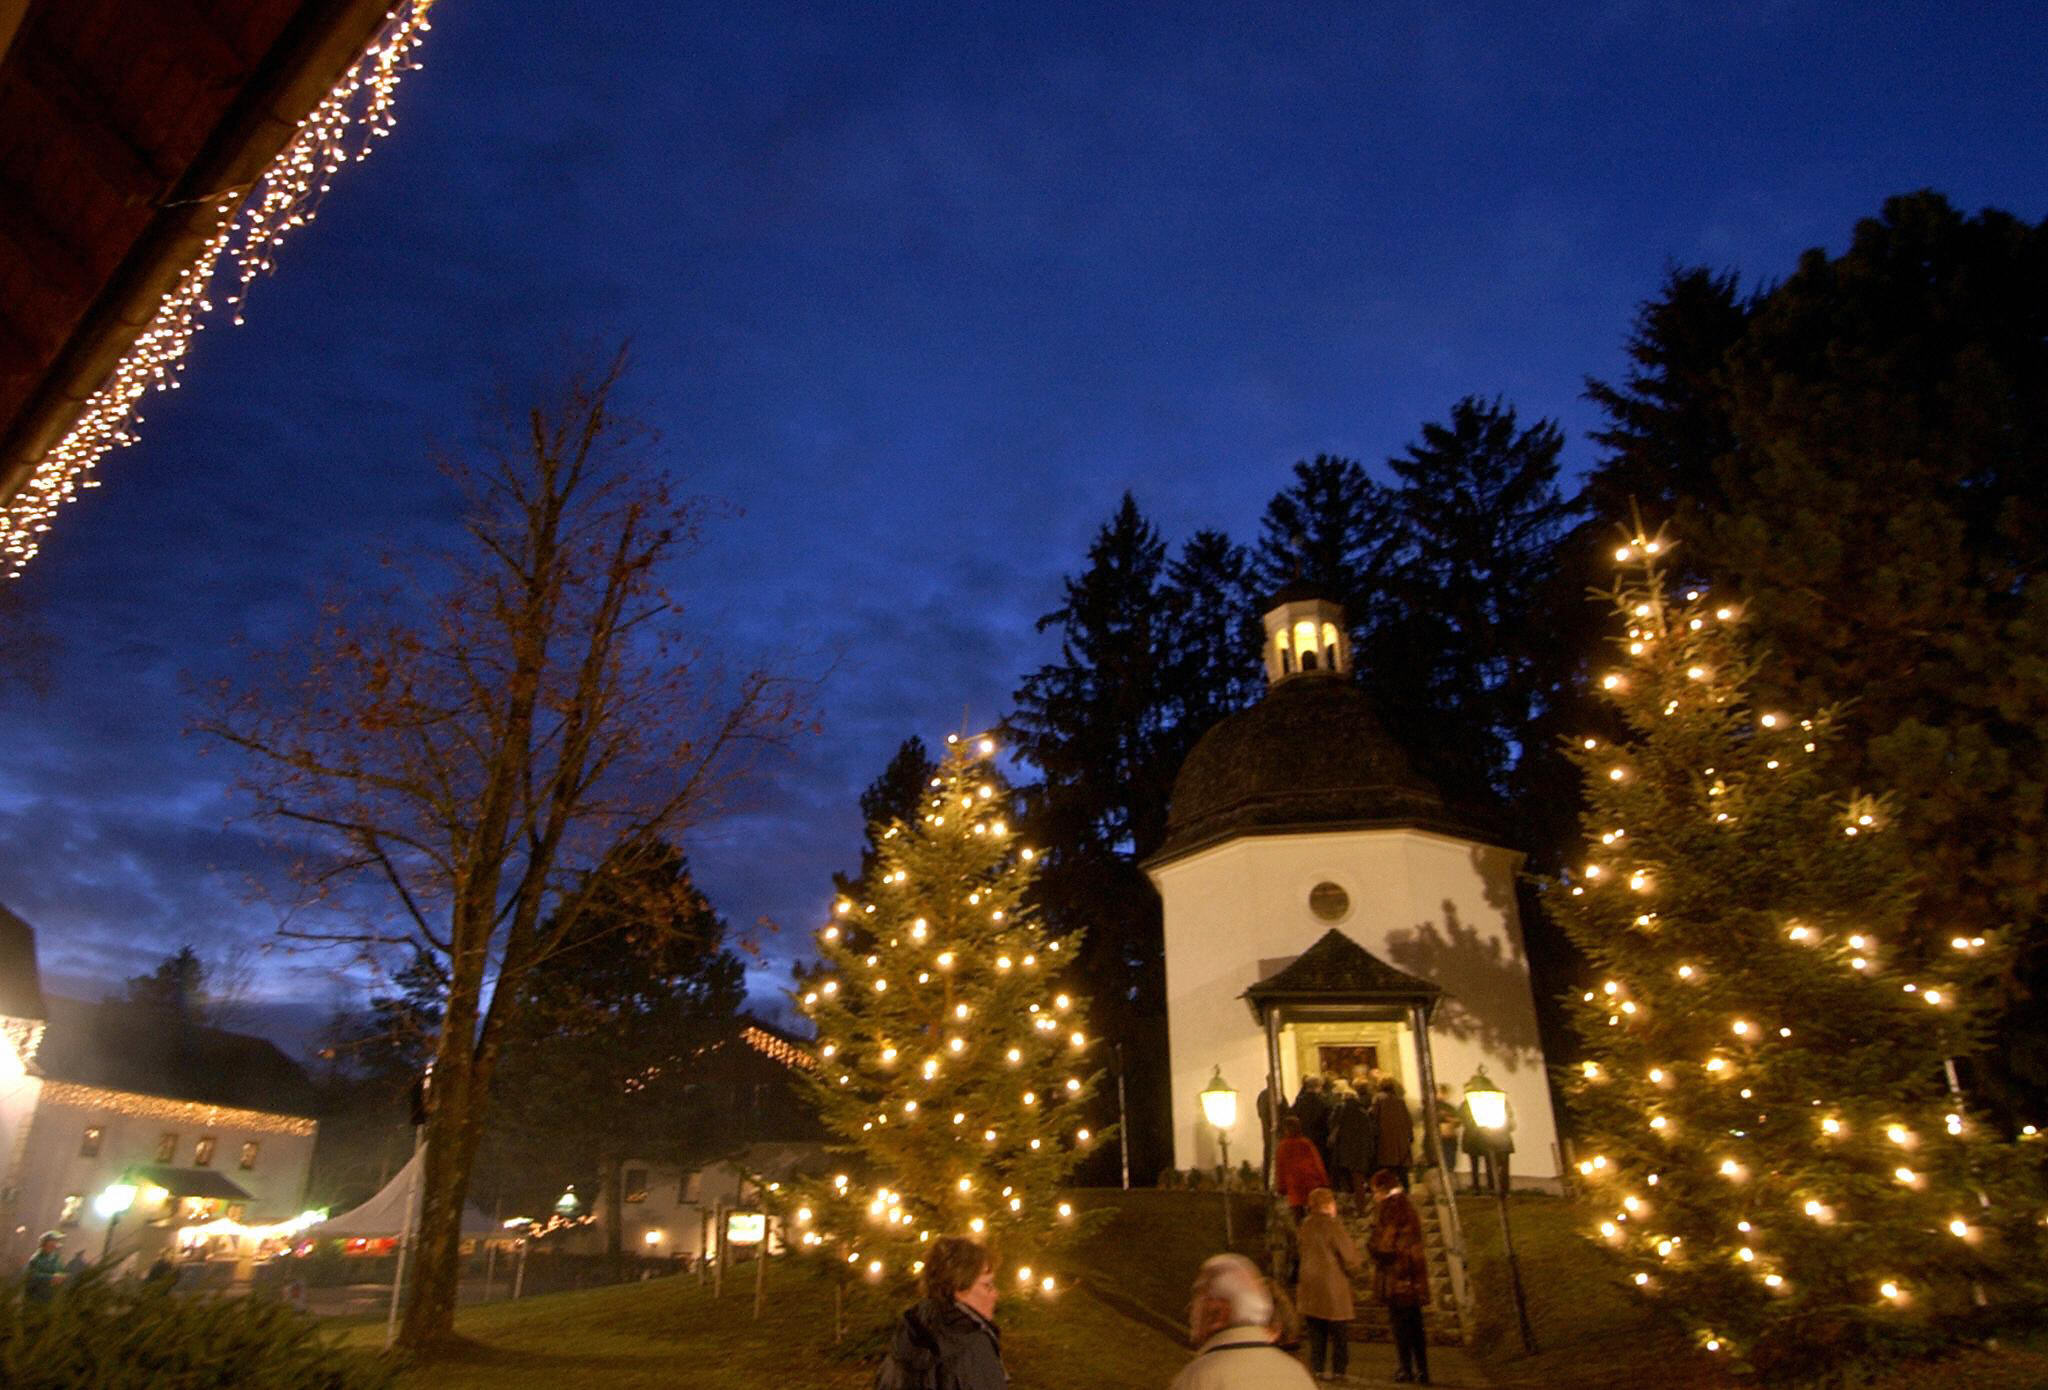 tourists visit the silent night memorial chapel in the austrian village of oberndorf on dec - What Time Is Walmart Open On Christmas Eve